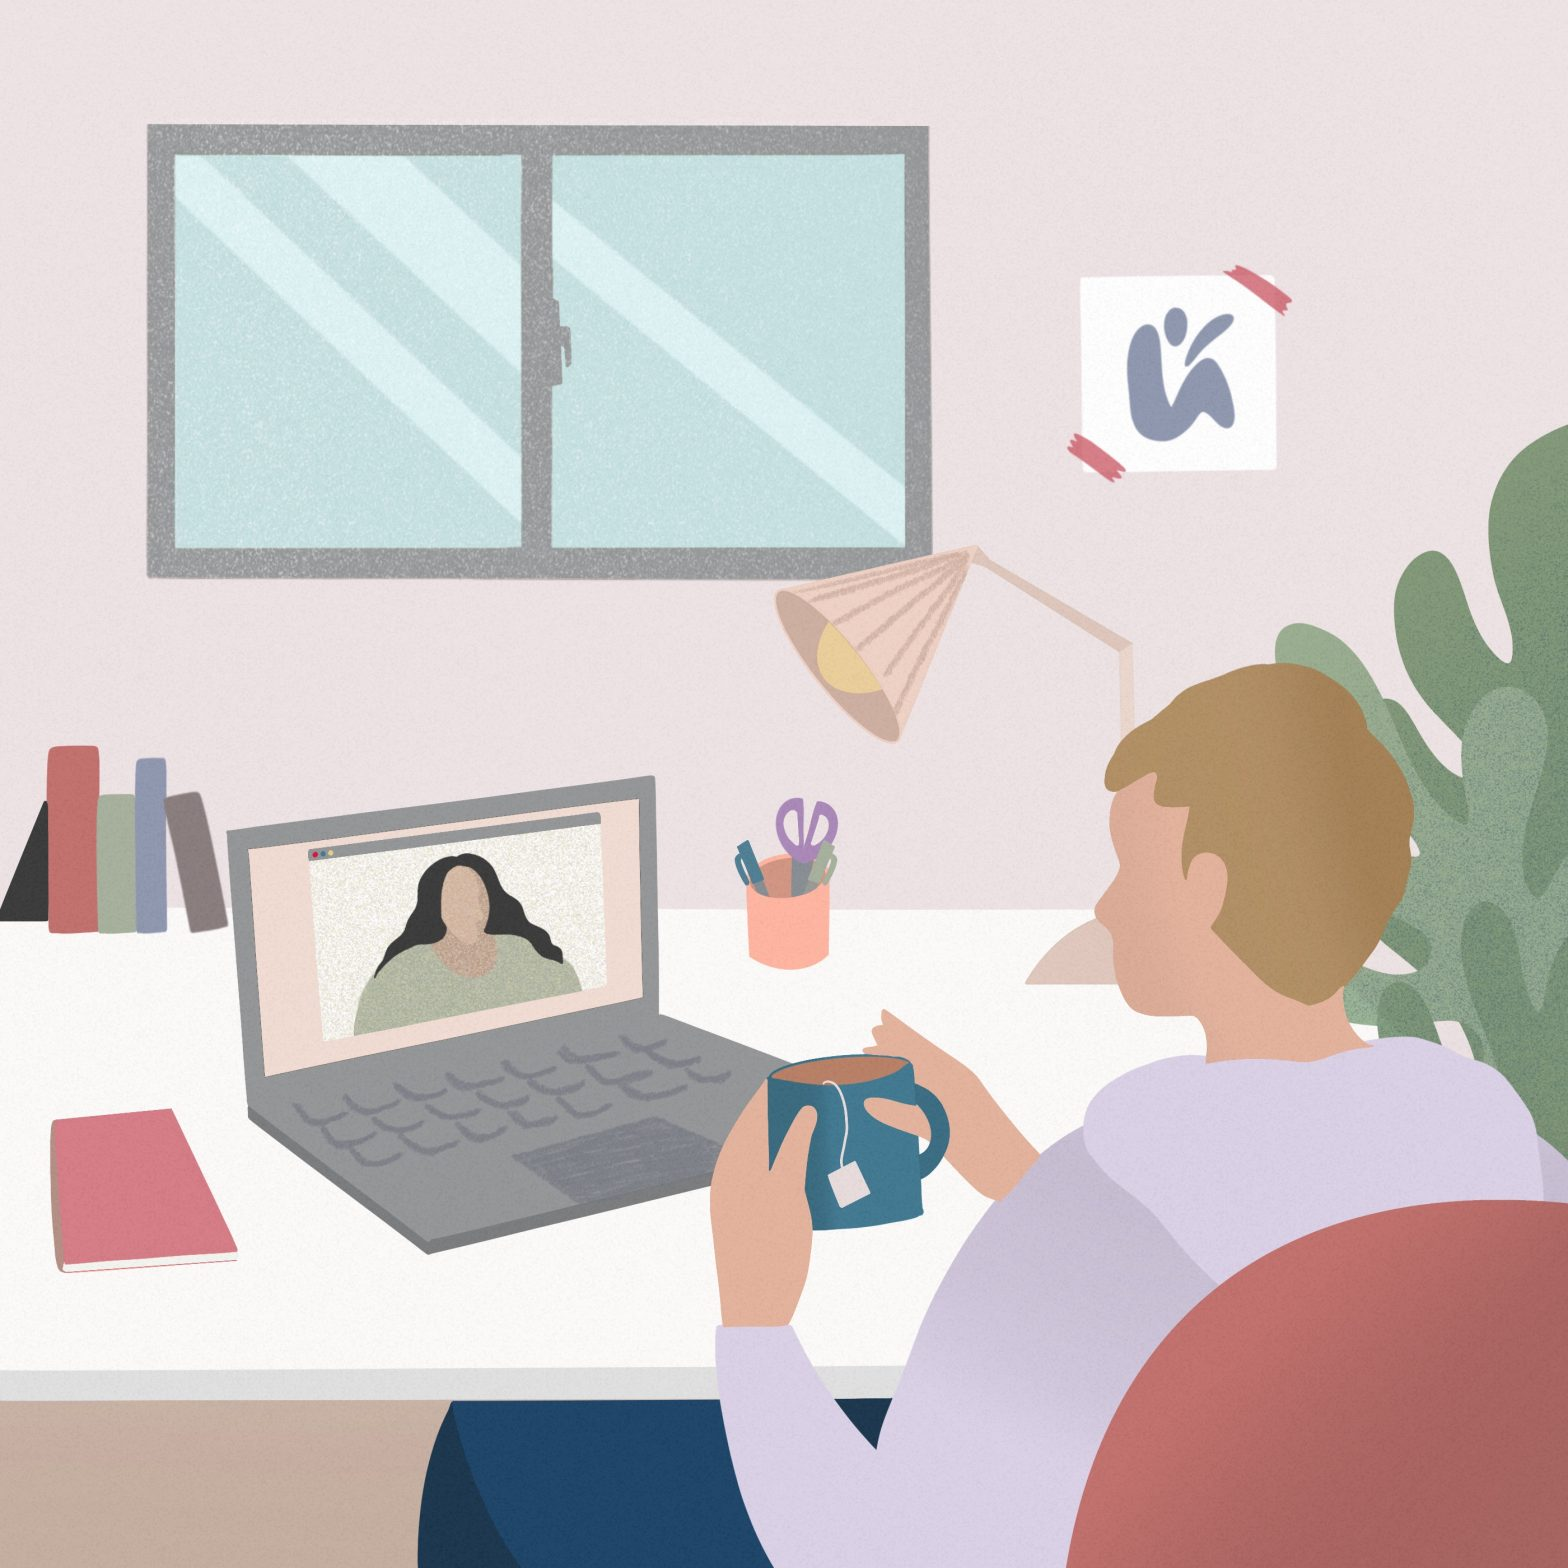 video conference, work at home, social distance, remote location, meeting, friend, home, laptop, women at desk, technology concept.